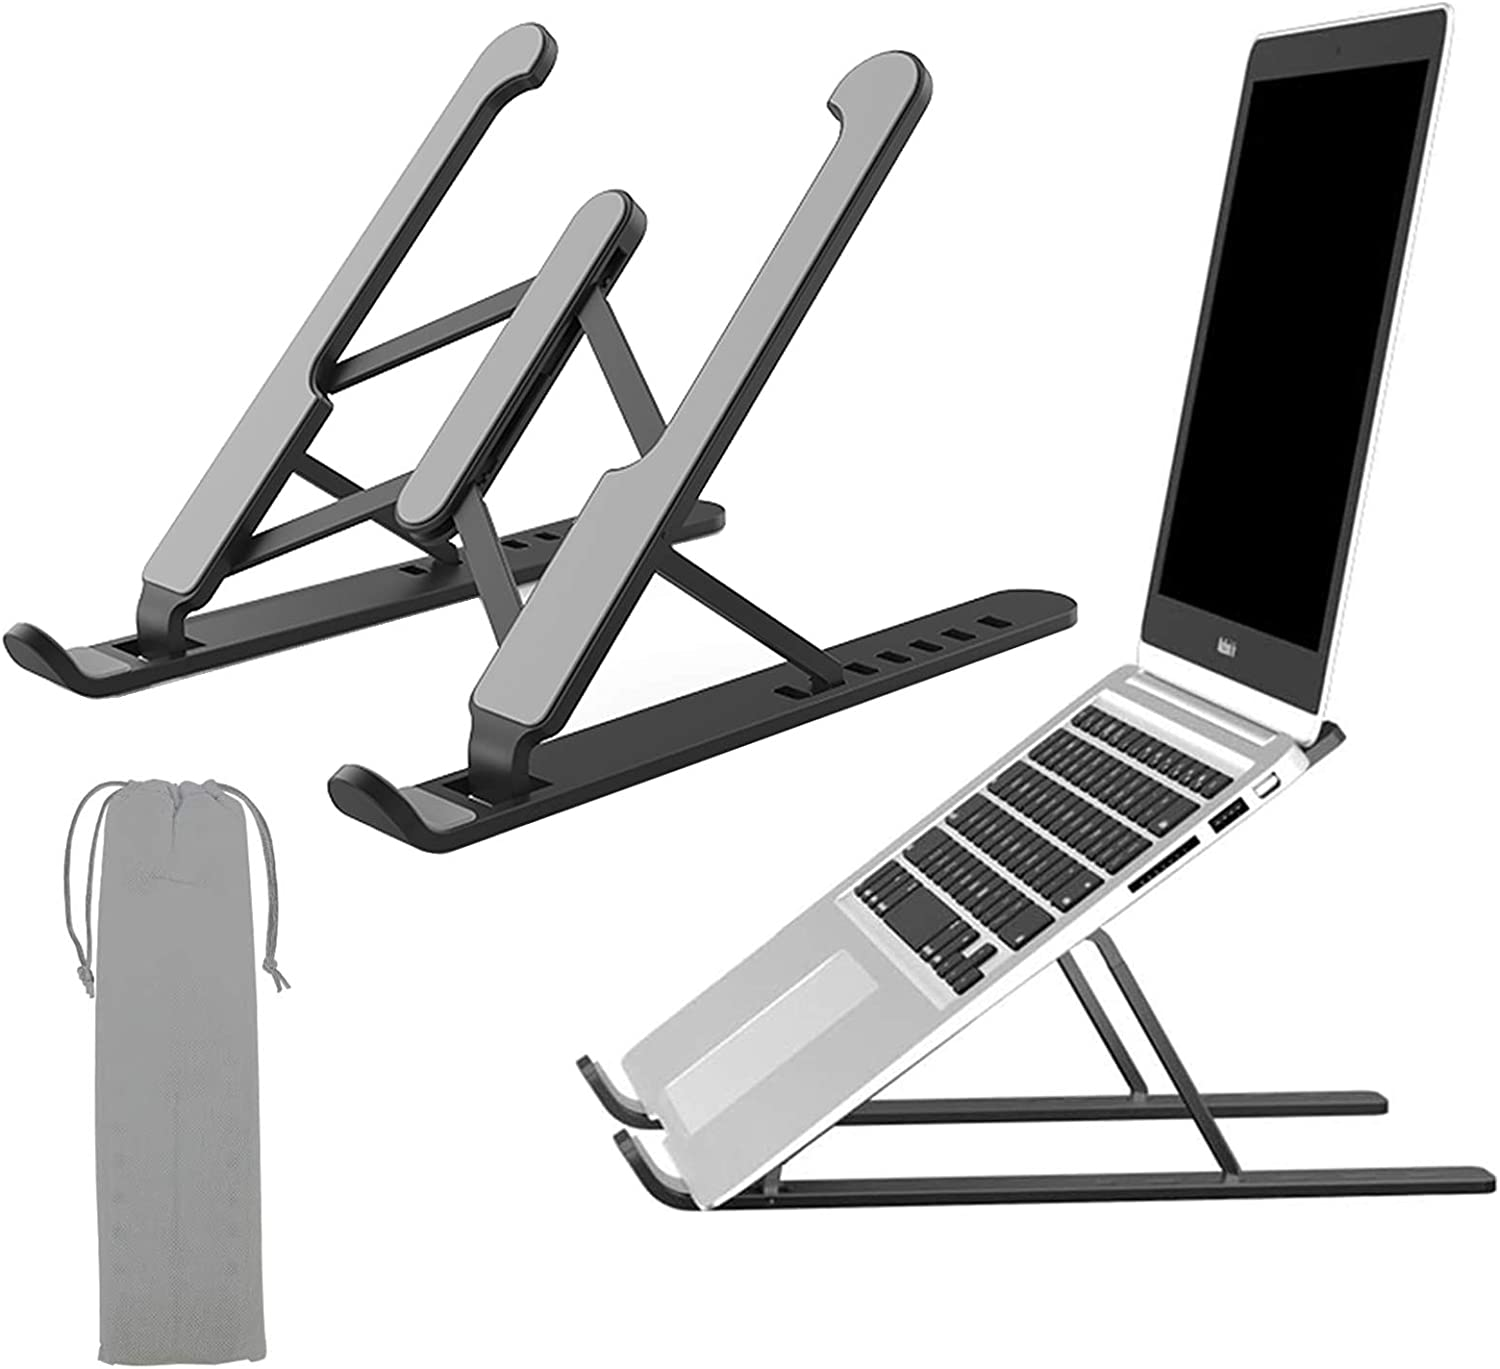 Laptop Tablet Stand Notebook Computer Stand Tablet Computer Stand Universal Lightweight Adjustable Laptop Computer Stand Ergonomically Designed for Home & Office